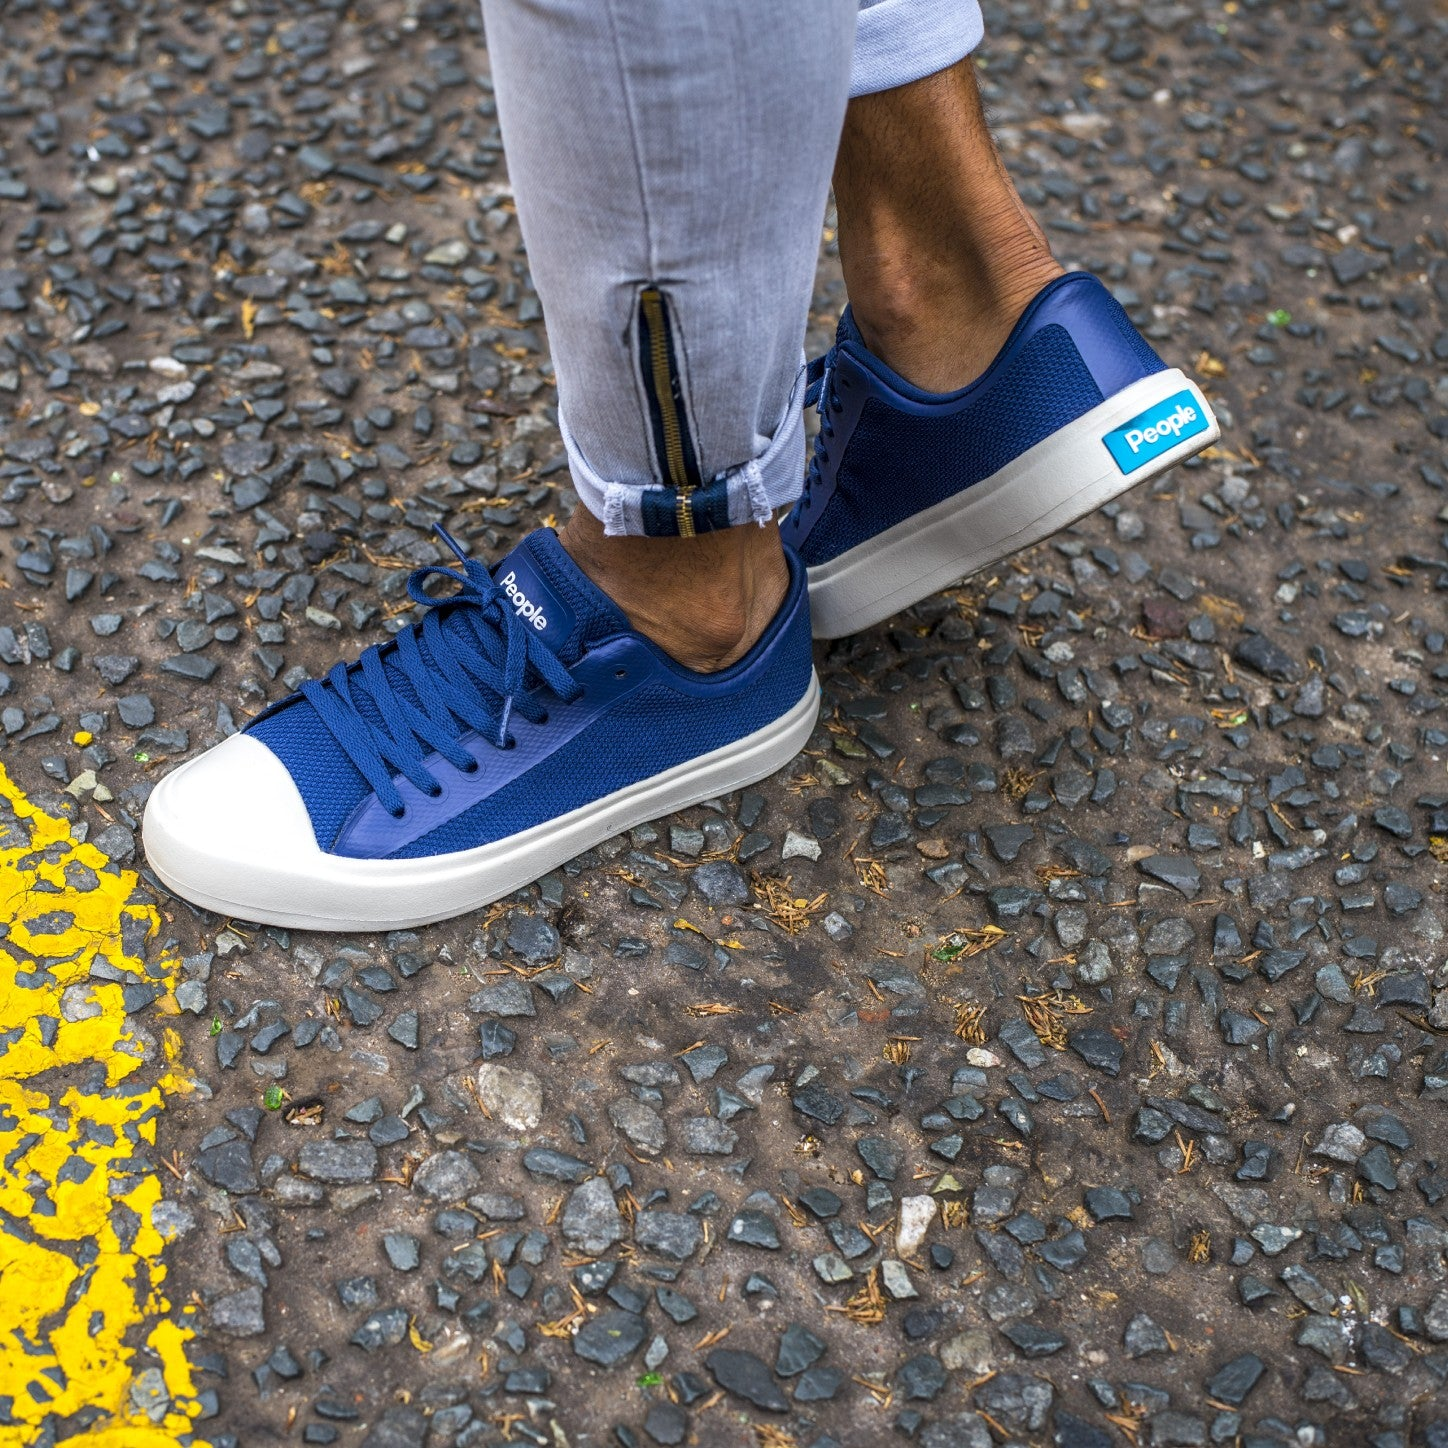 The Phillips (Marina Blue / Picket White)